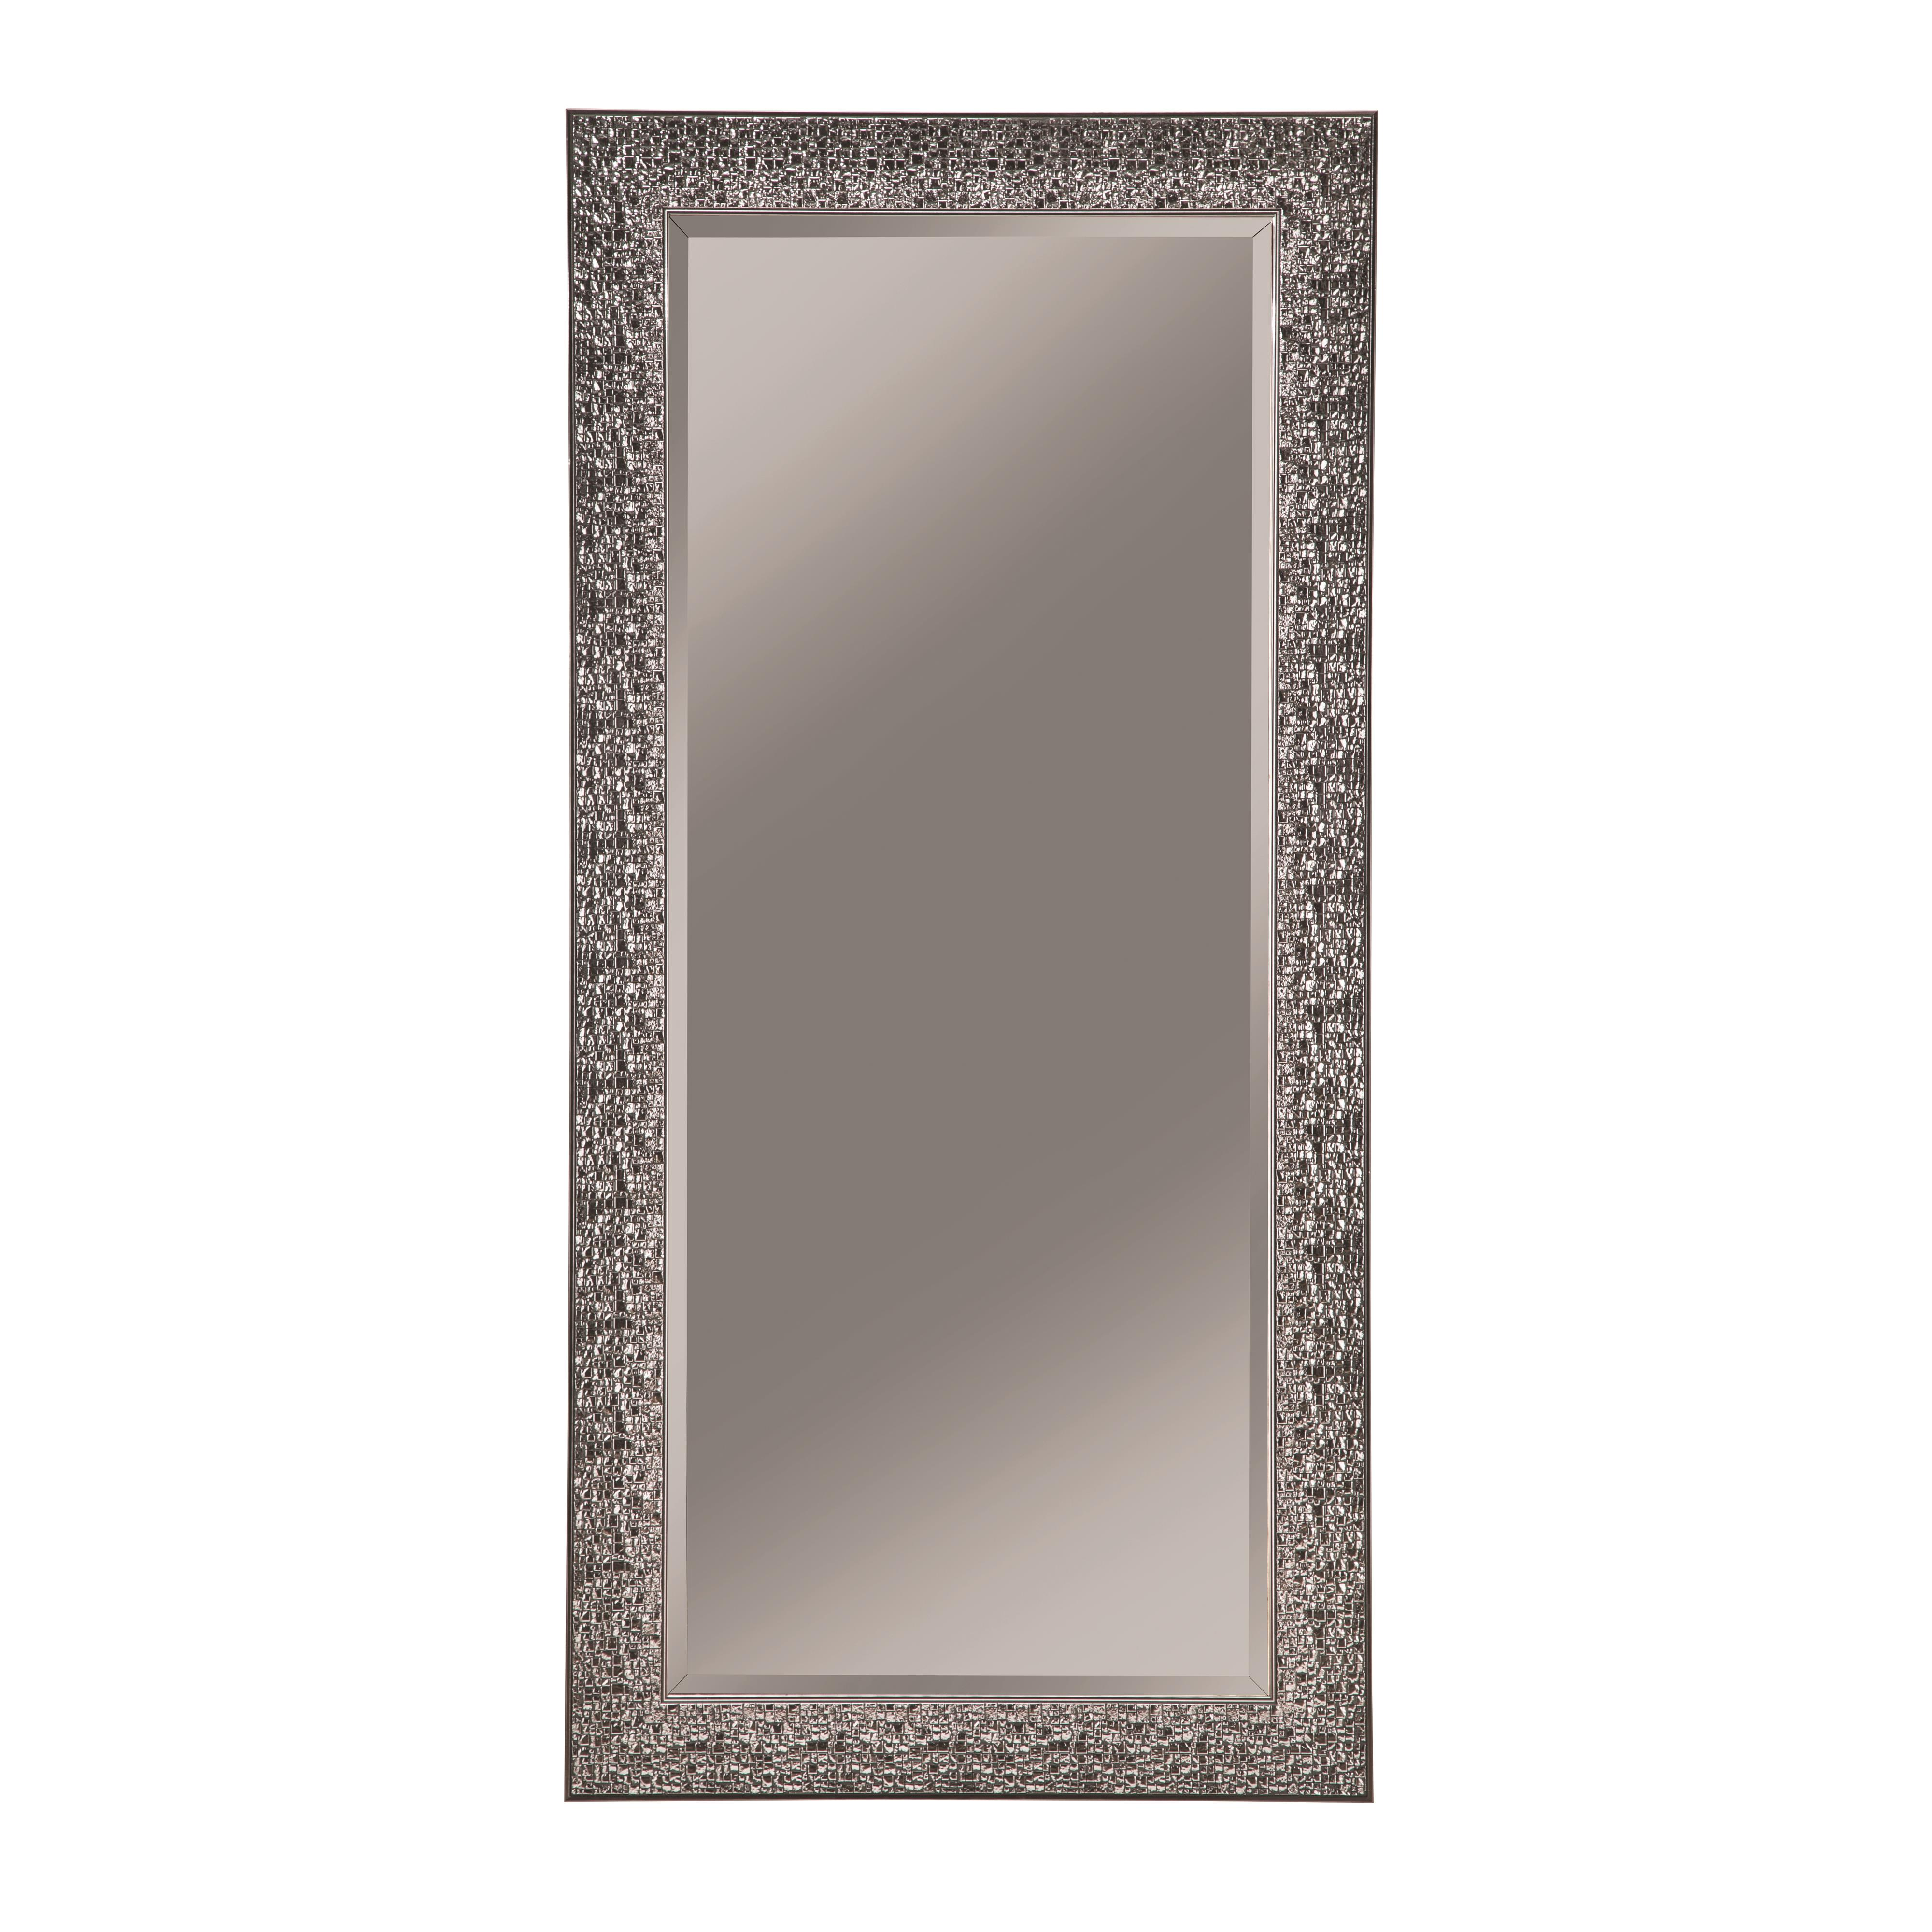 Coaster Accent Mirrors Mirror - Item Number: 901999